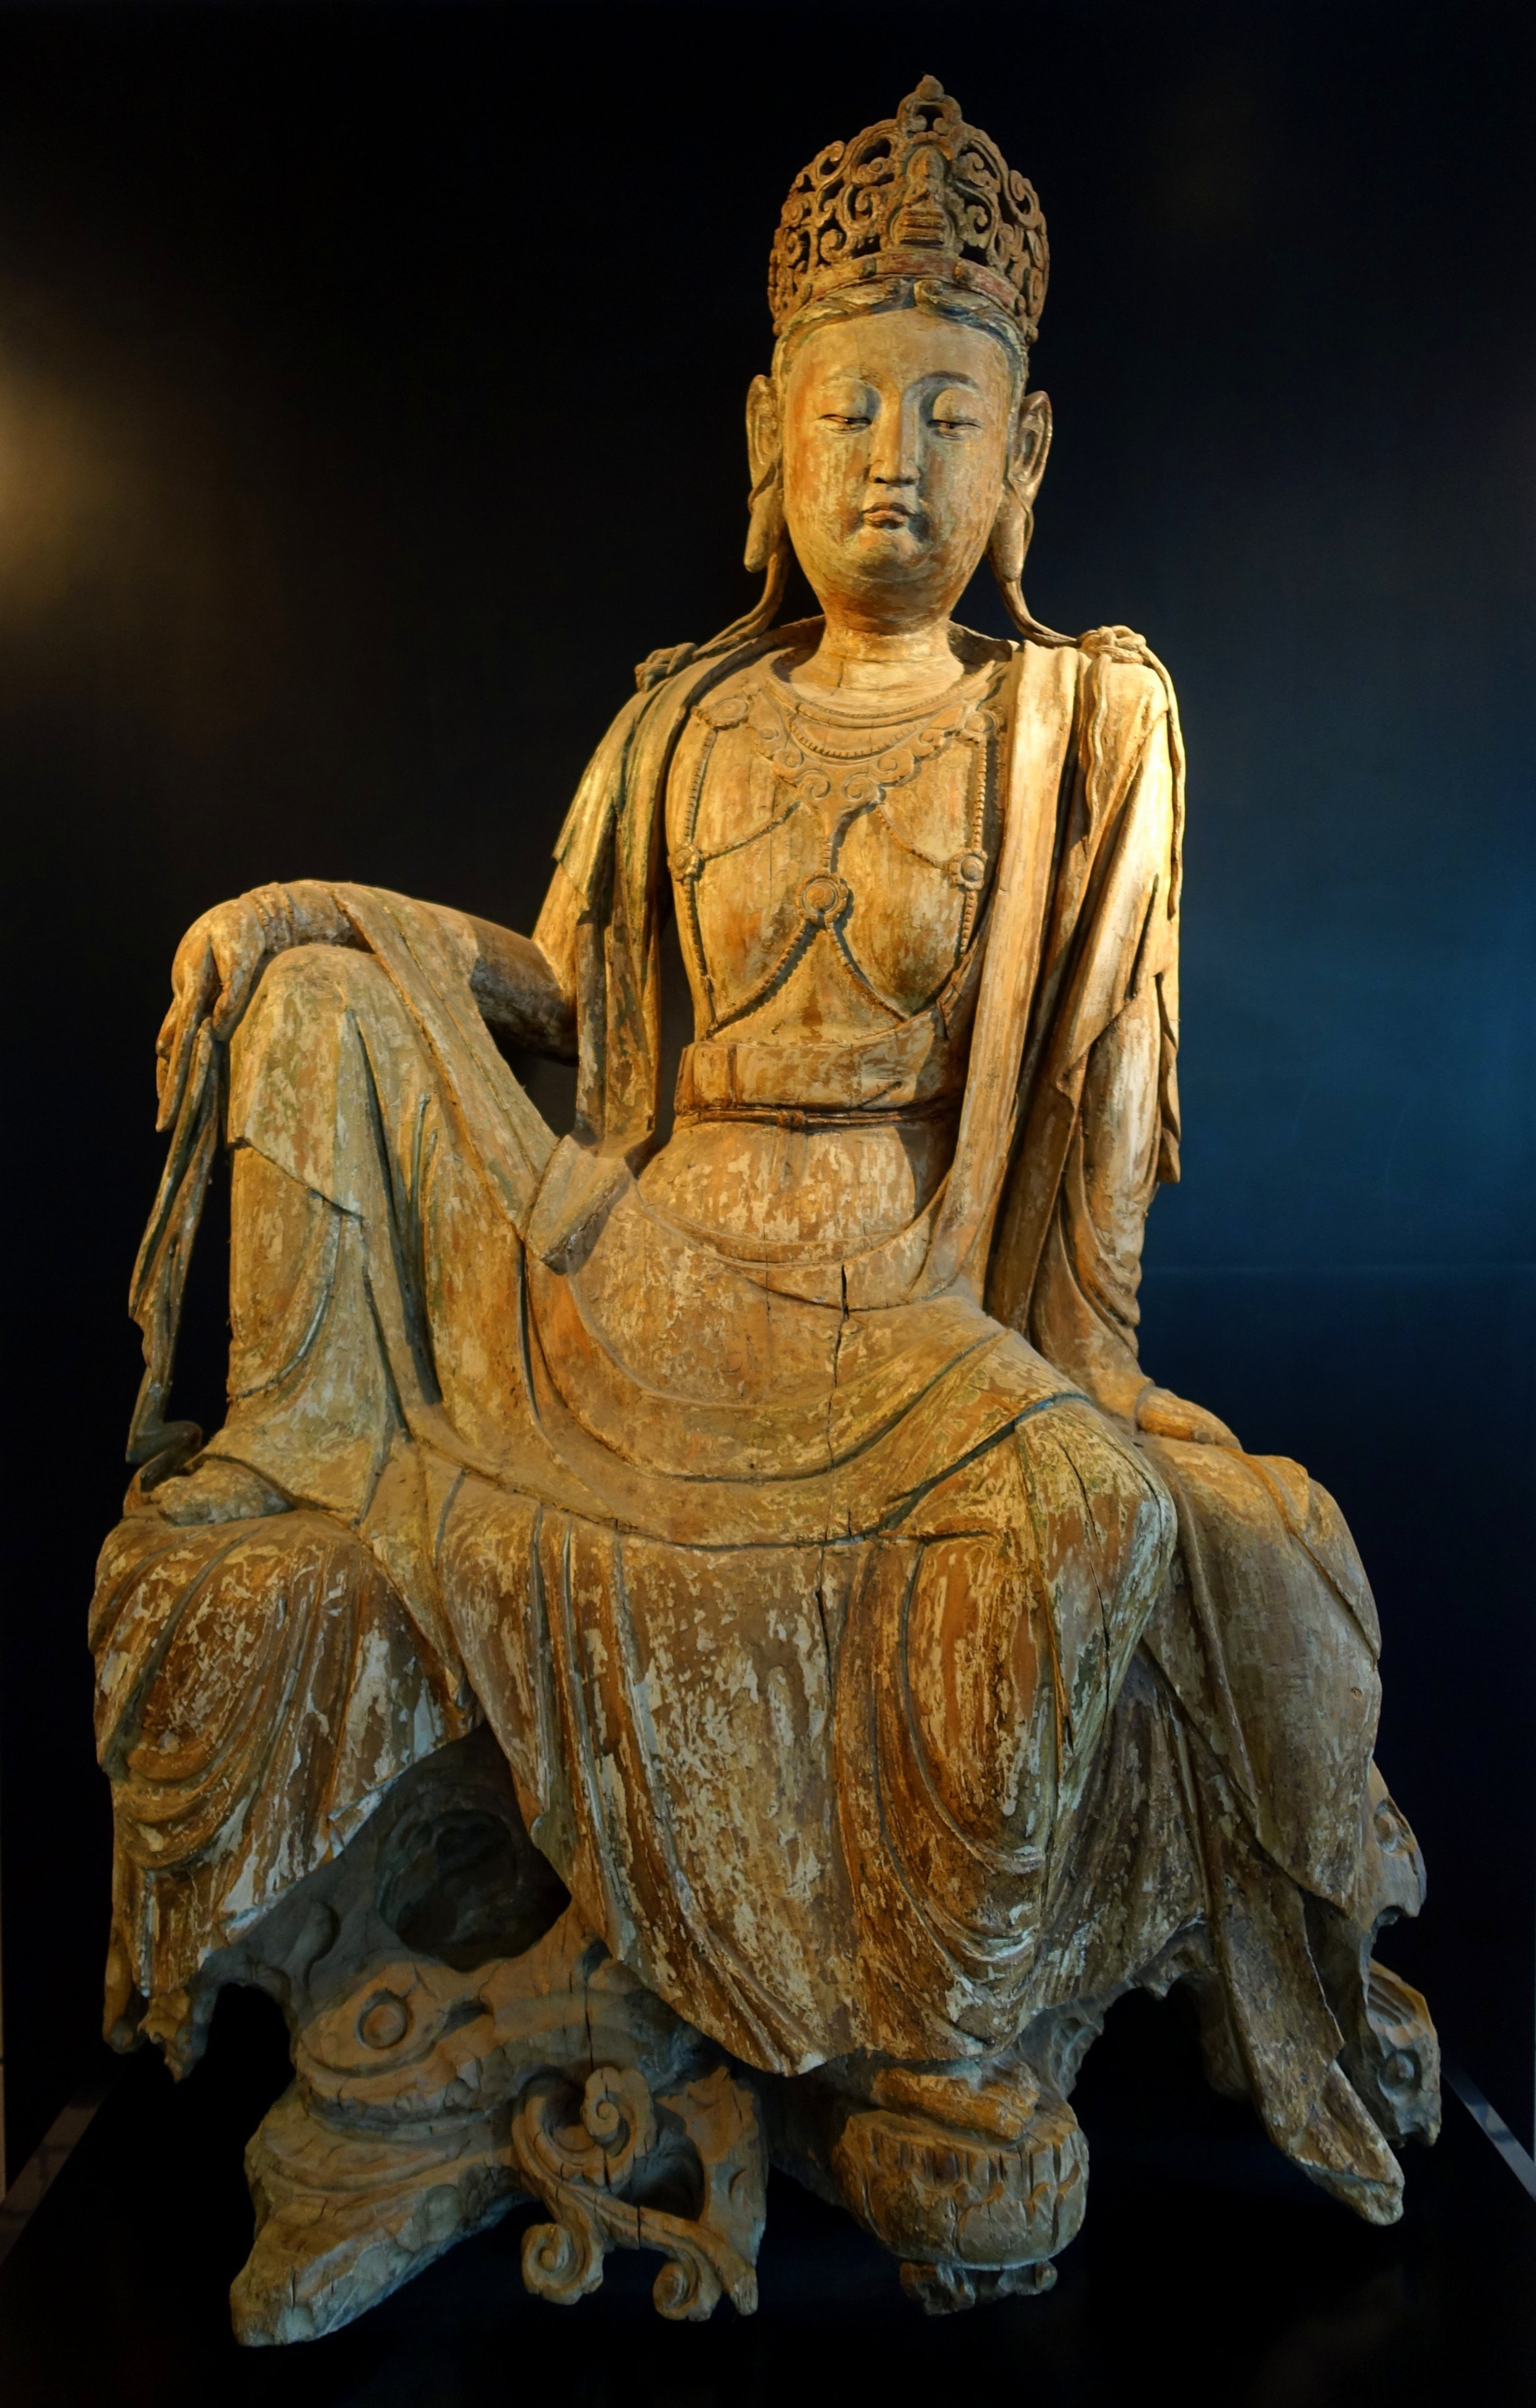 Guanyin,_China,_12th_to_13th_century,_wood_with_polychrome_pigments_-_HongKongMuseumofArt.